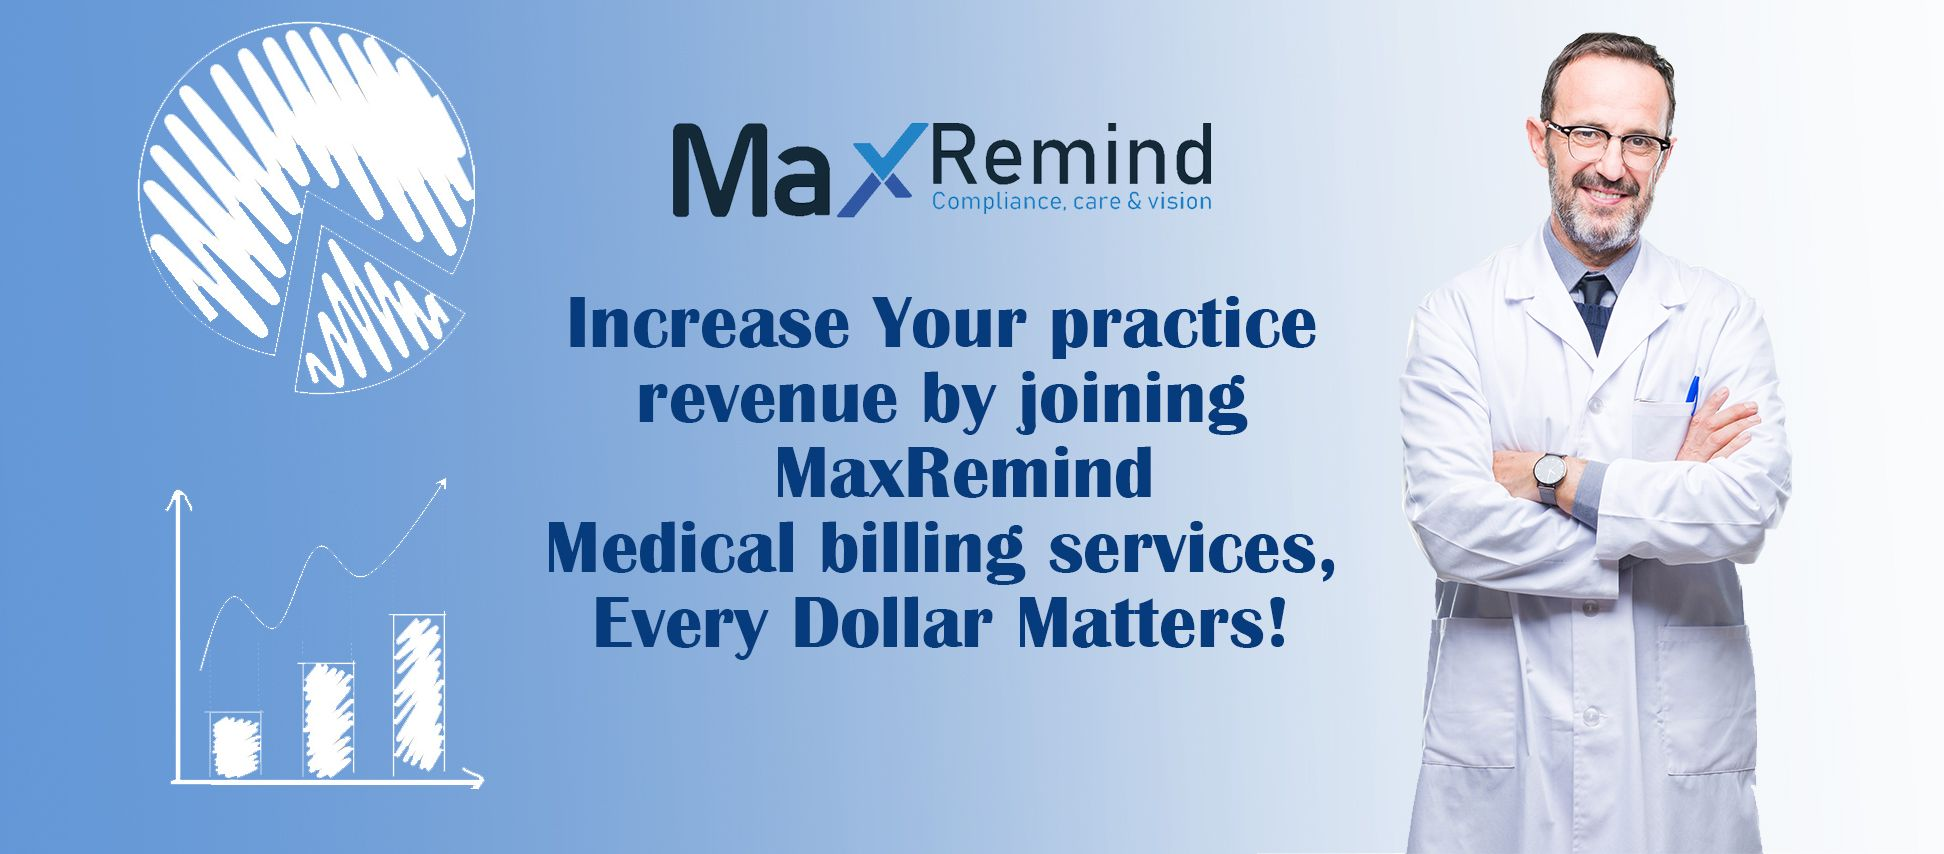 Get paid faster increase your practice revenue with